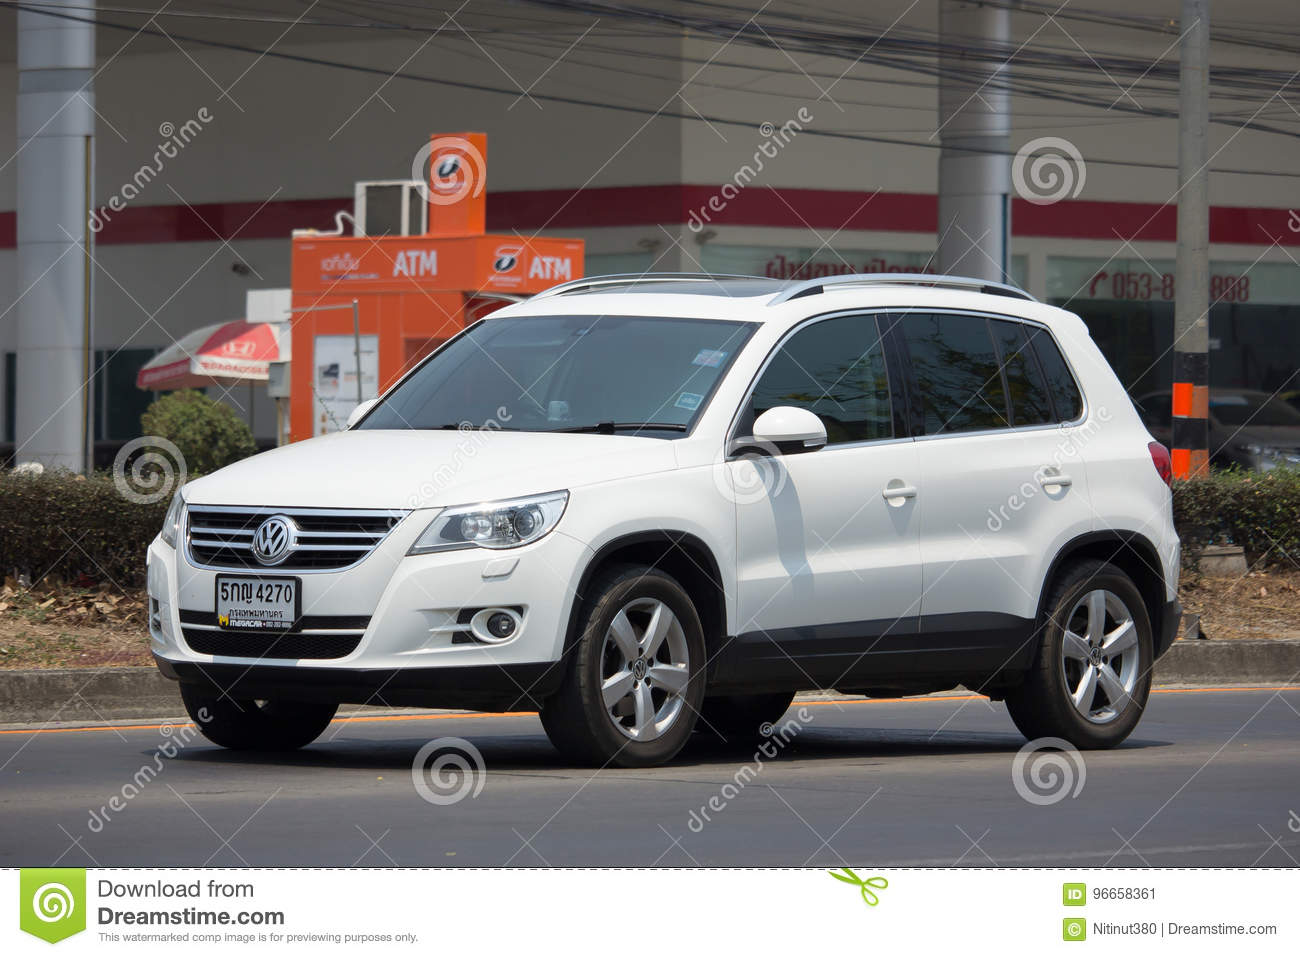 Cuv Car Private Volkswagen Tiguan Compact Crossover Vehicle Or Cuv